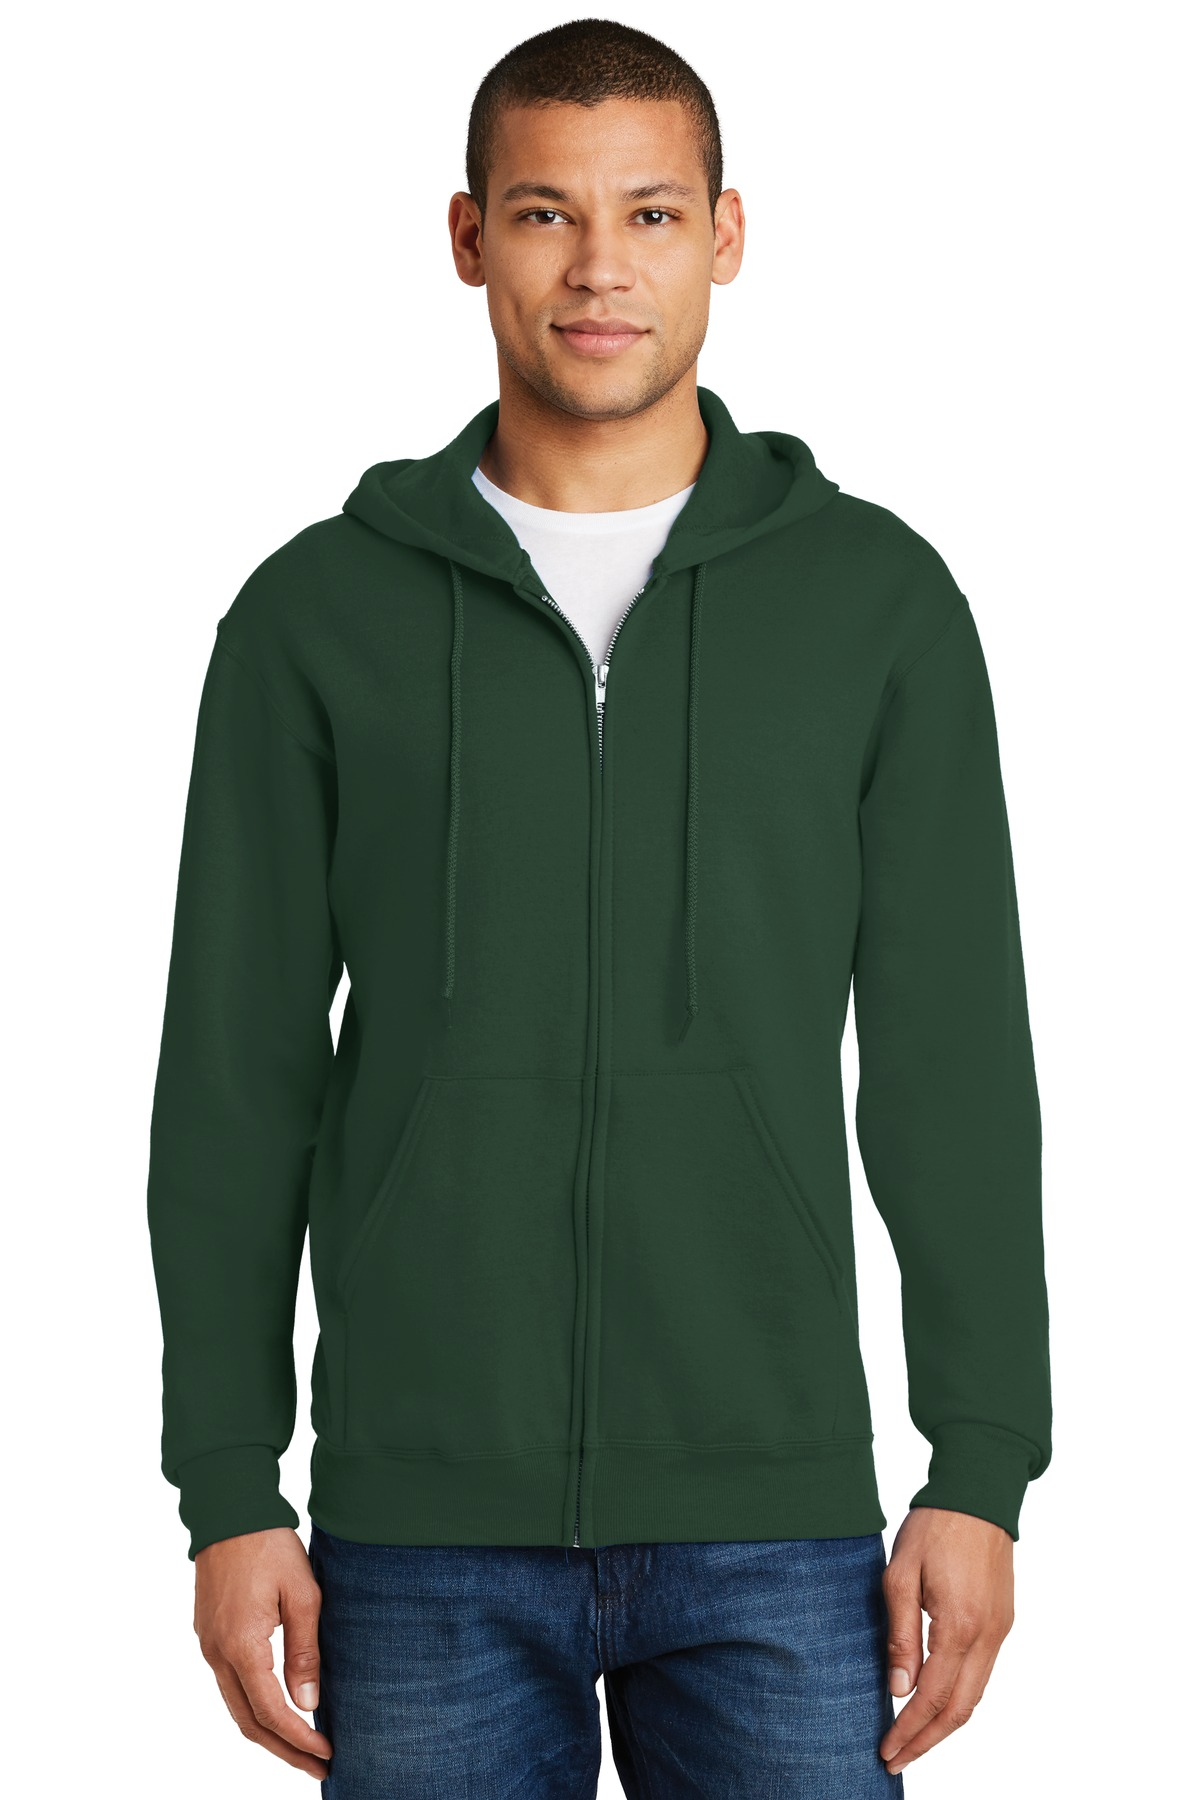 Jerzees® - NuBlend® Full-Zip Hooded Sweatshirt.-Jerzees